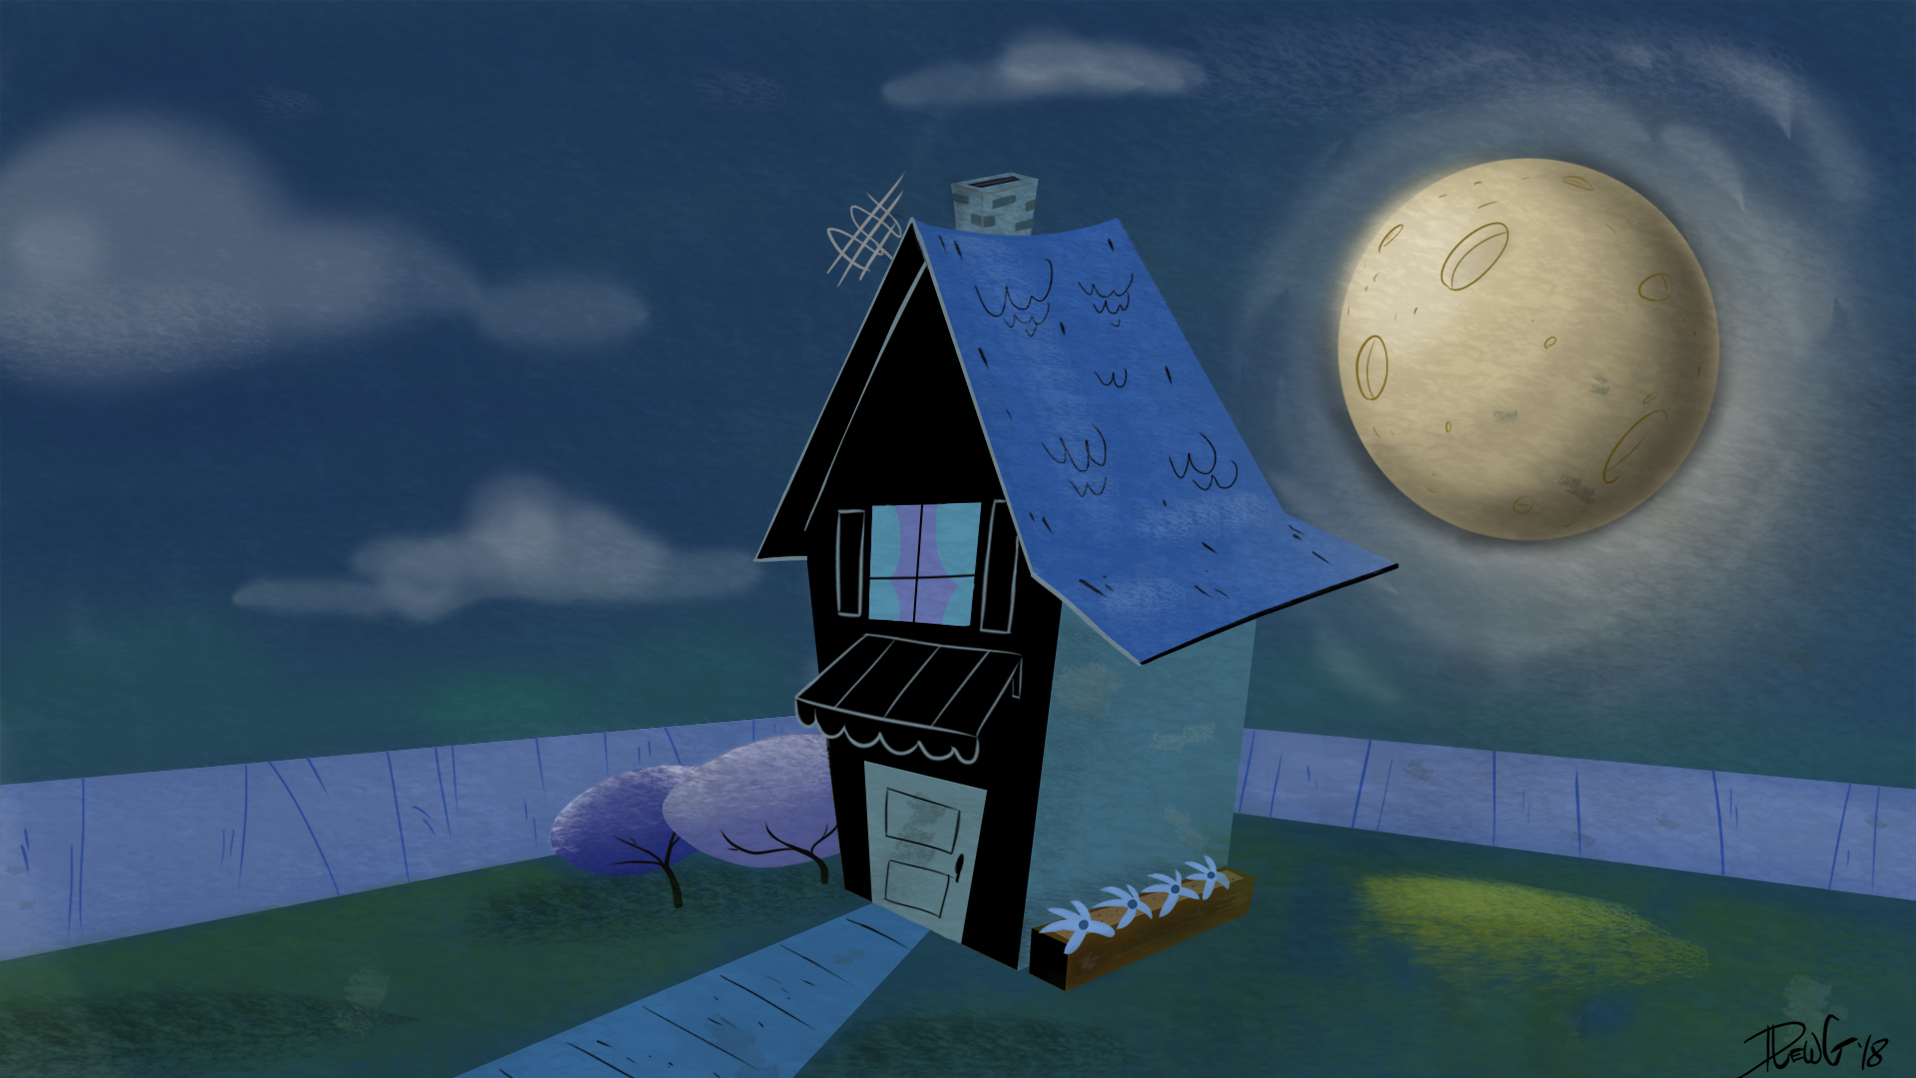 A House at Night